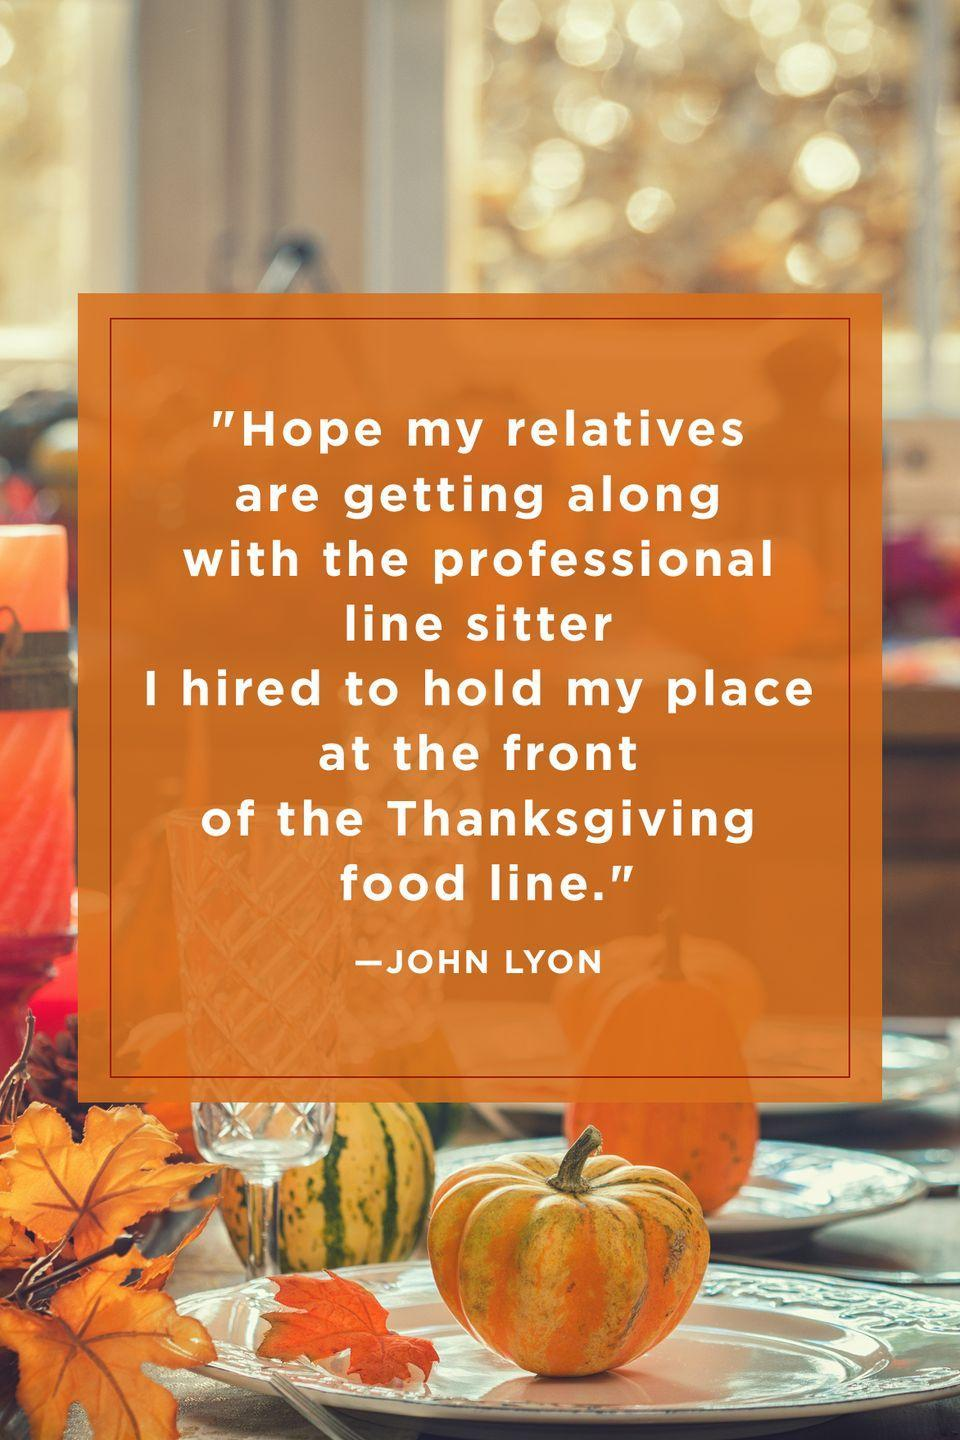 "<p>""Hope my relatives are getting along with the professional line sitter I hired to hold my place at the front of the Thanksgiving food line.""</p>"